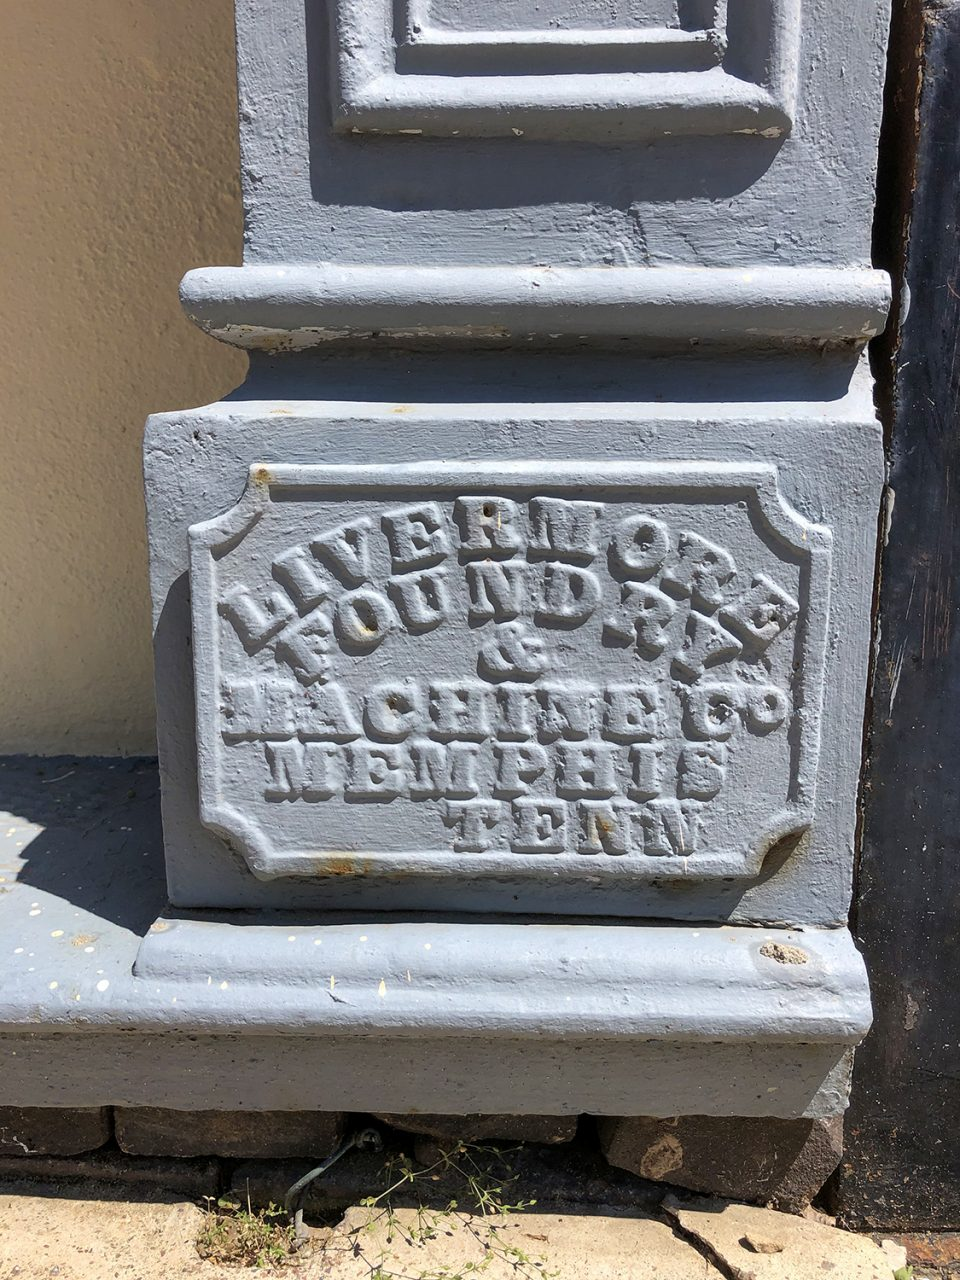 Nameplate for Livermore Foundry and Machine Co., of Memphis, Tennessee, seen in Yazoo City.